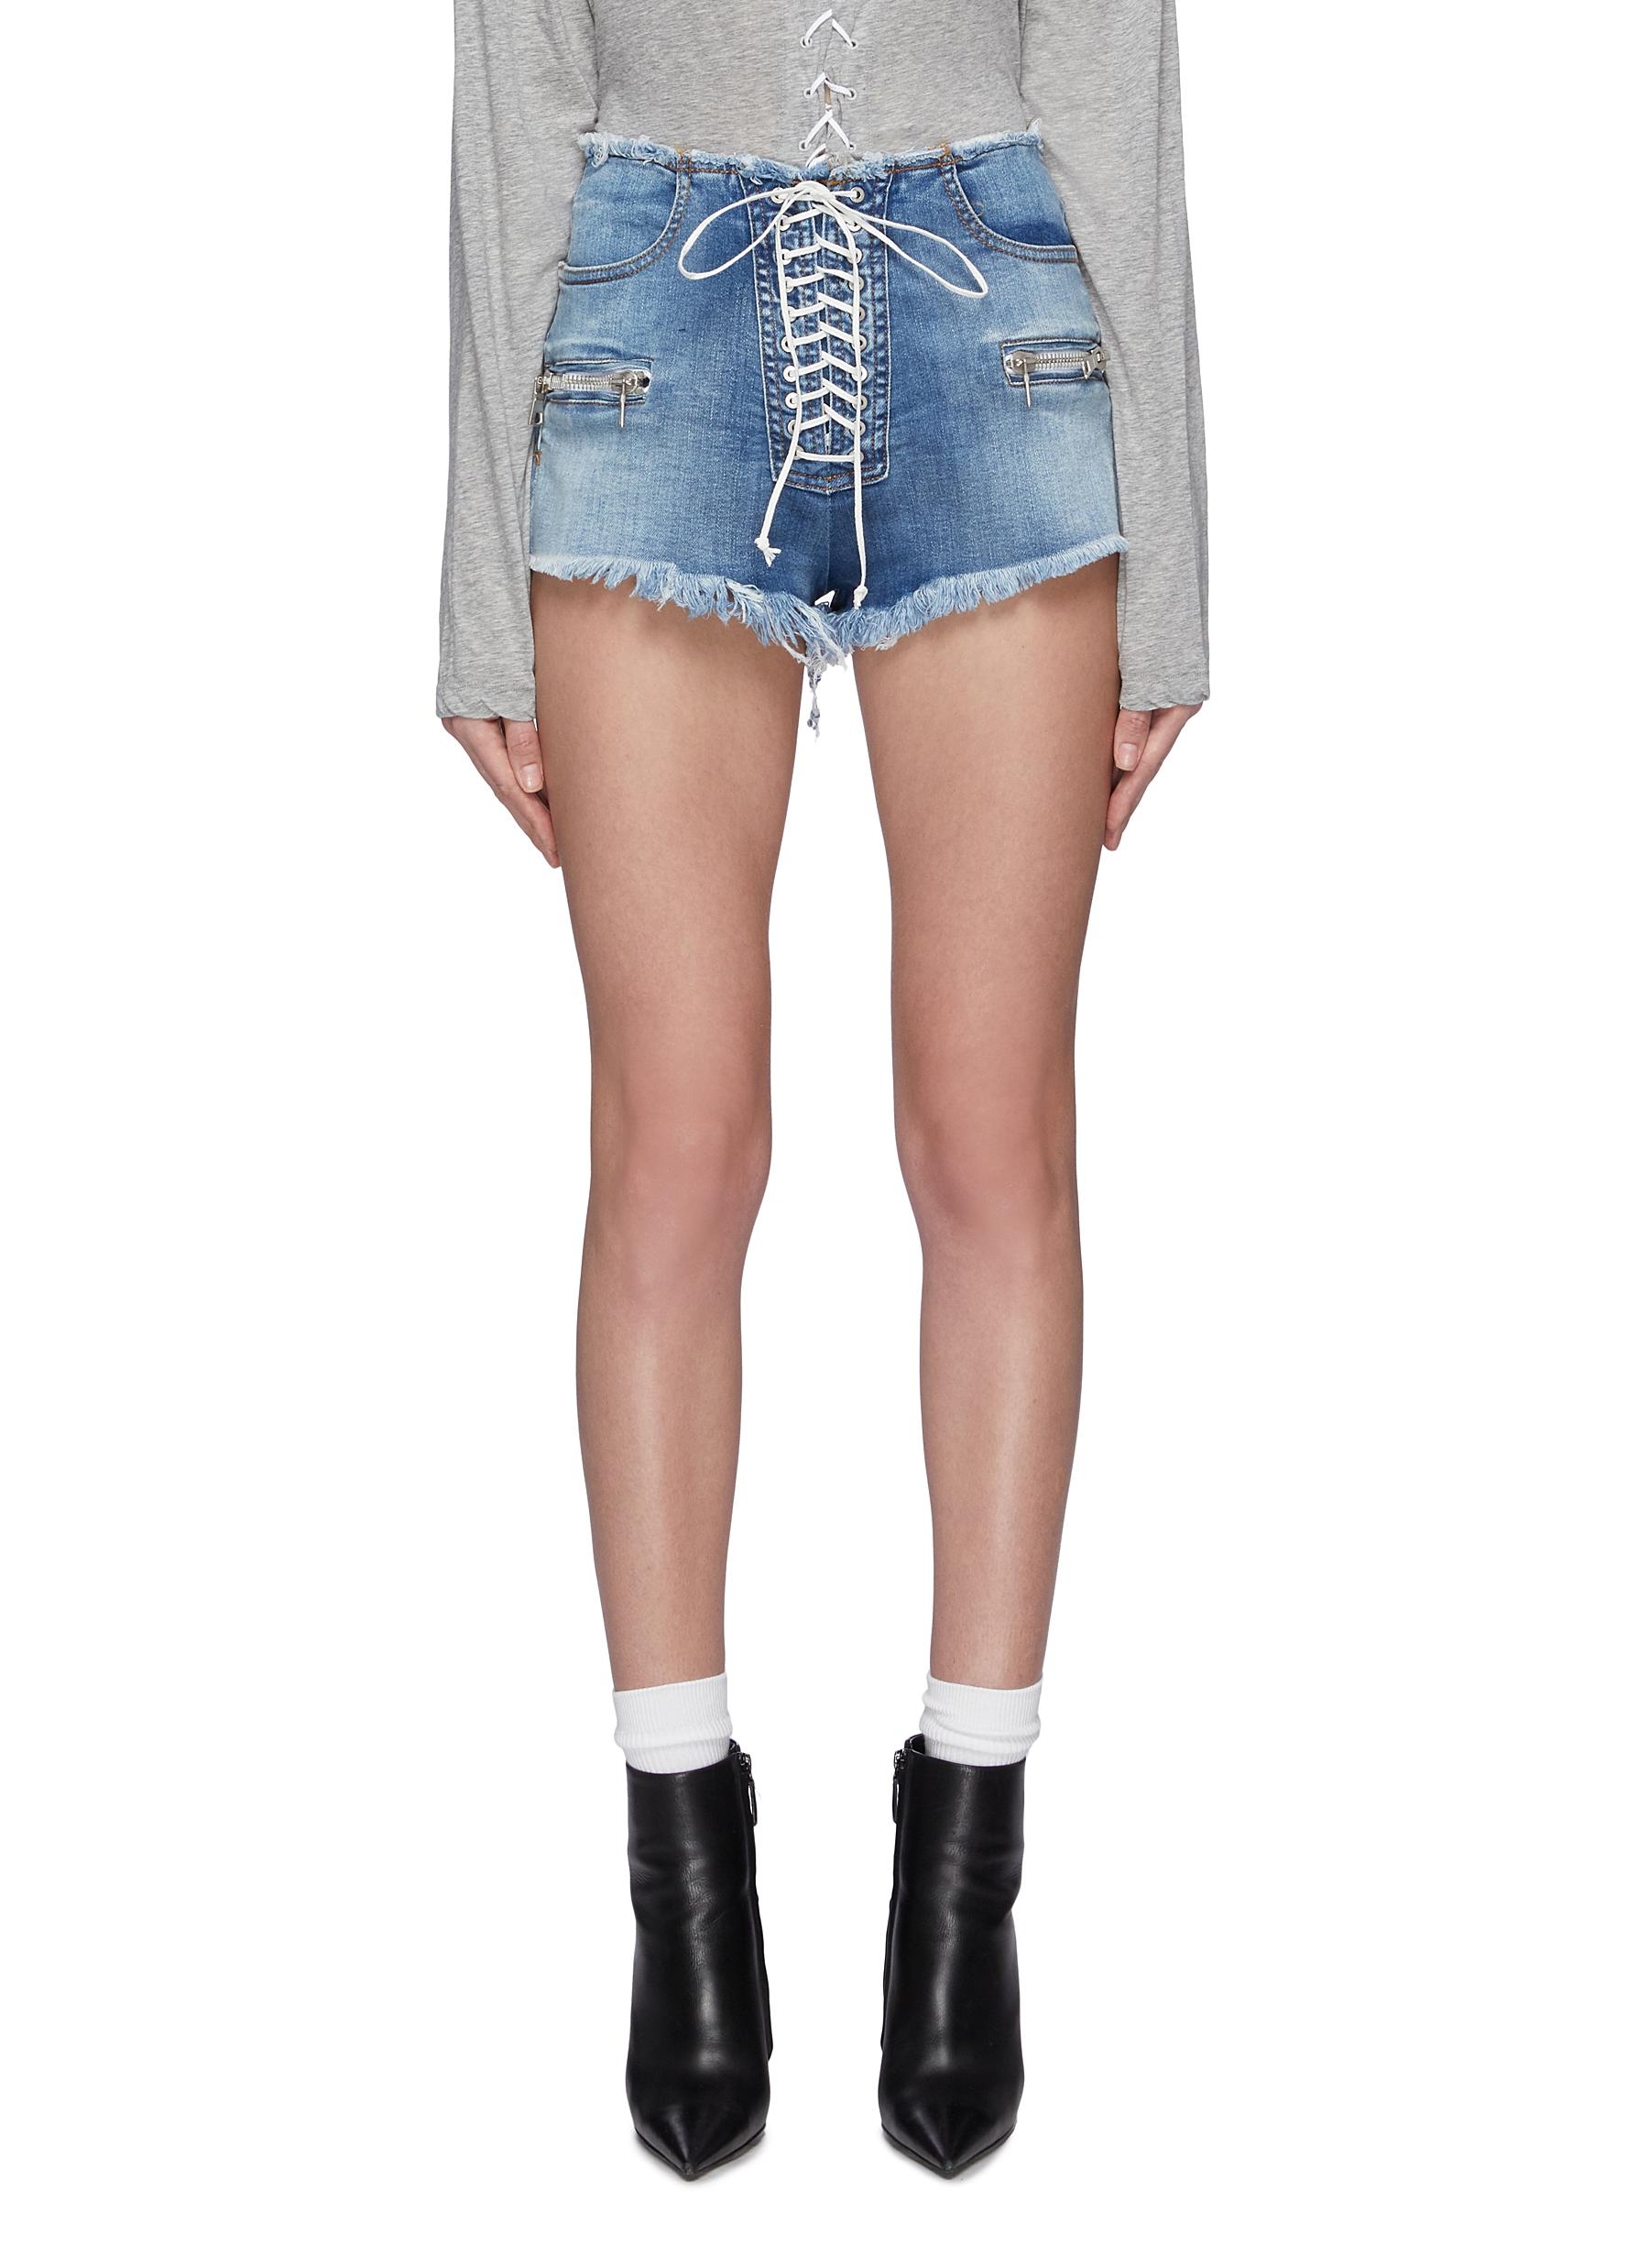 Lace-up frayed denim shorts by Ben Taverniti Unravel Project